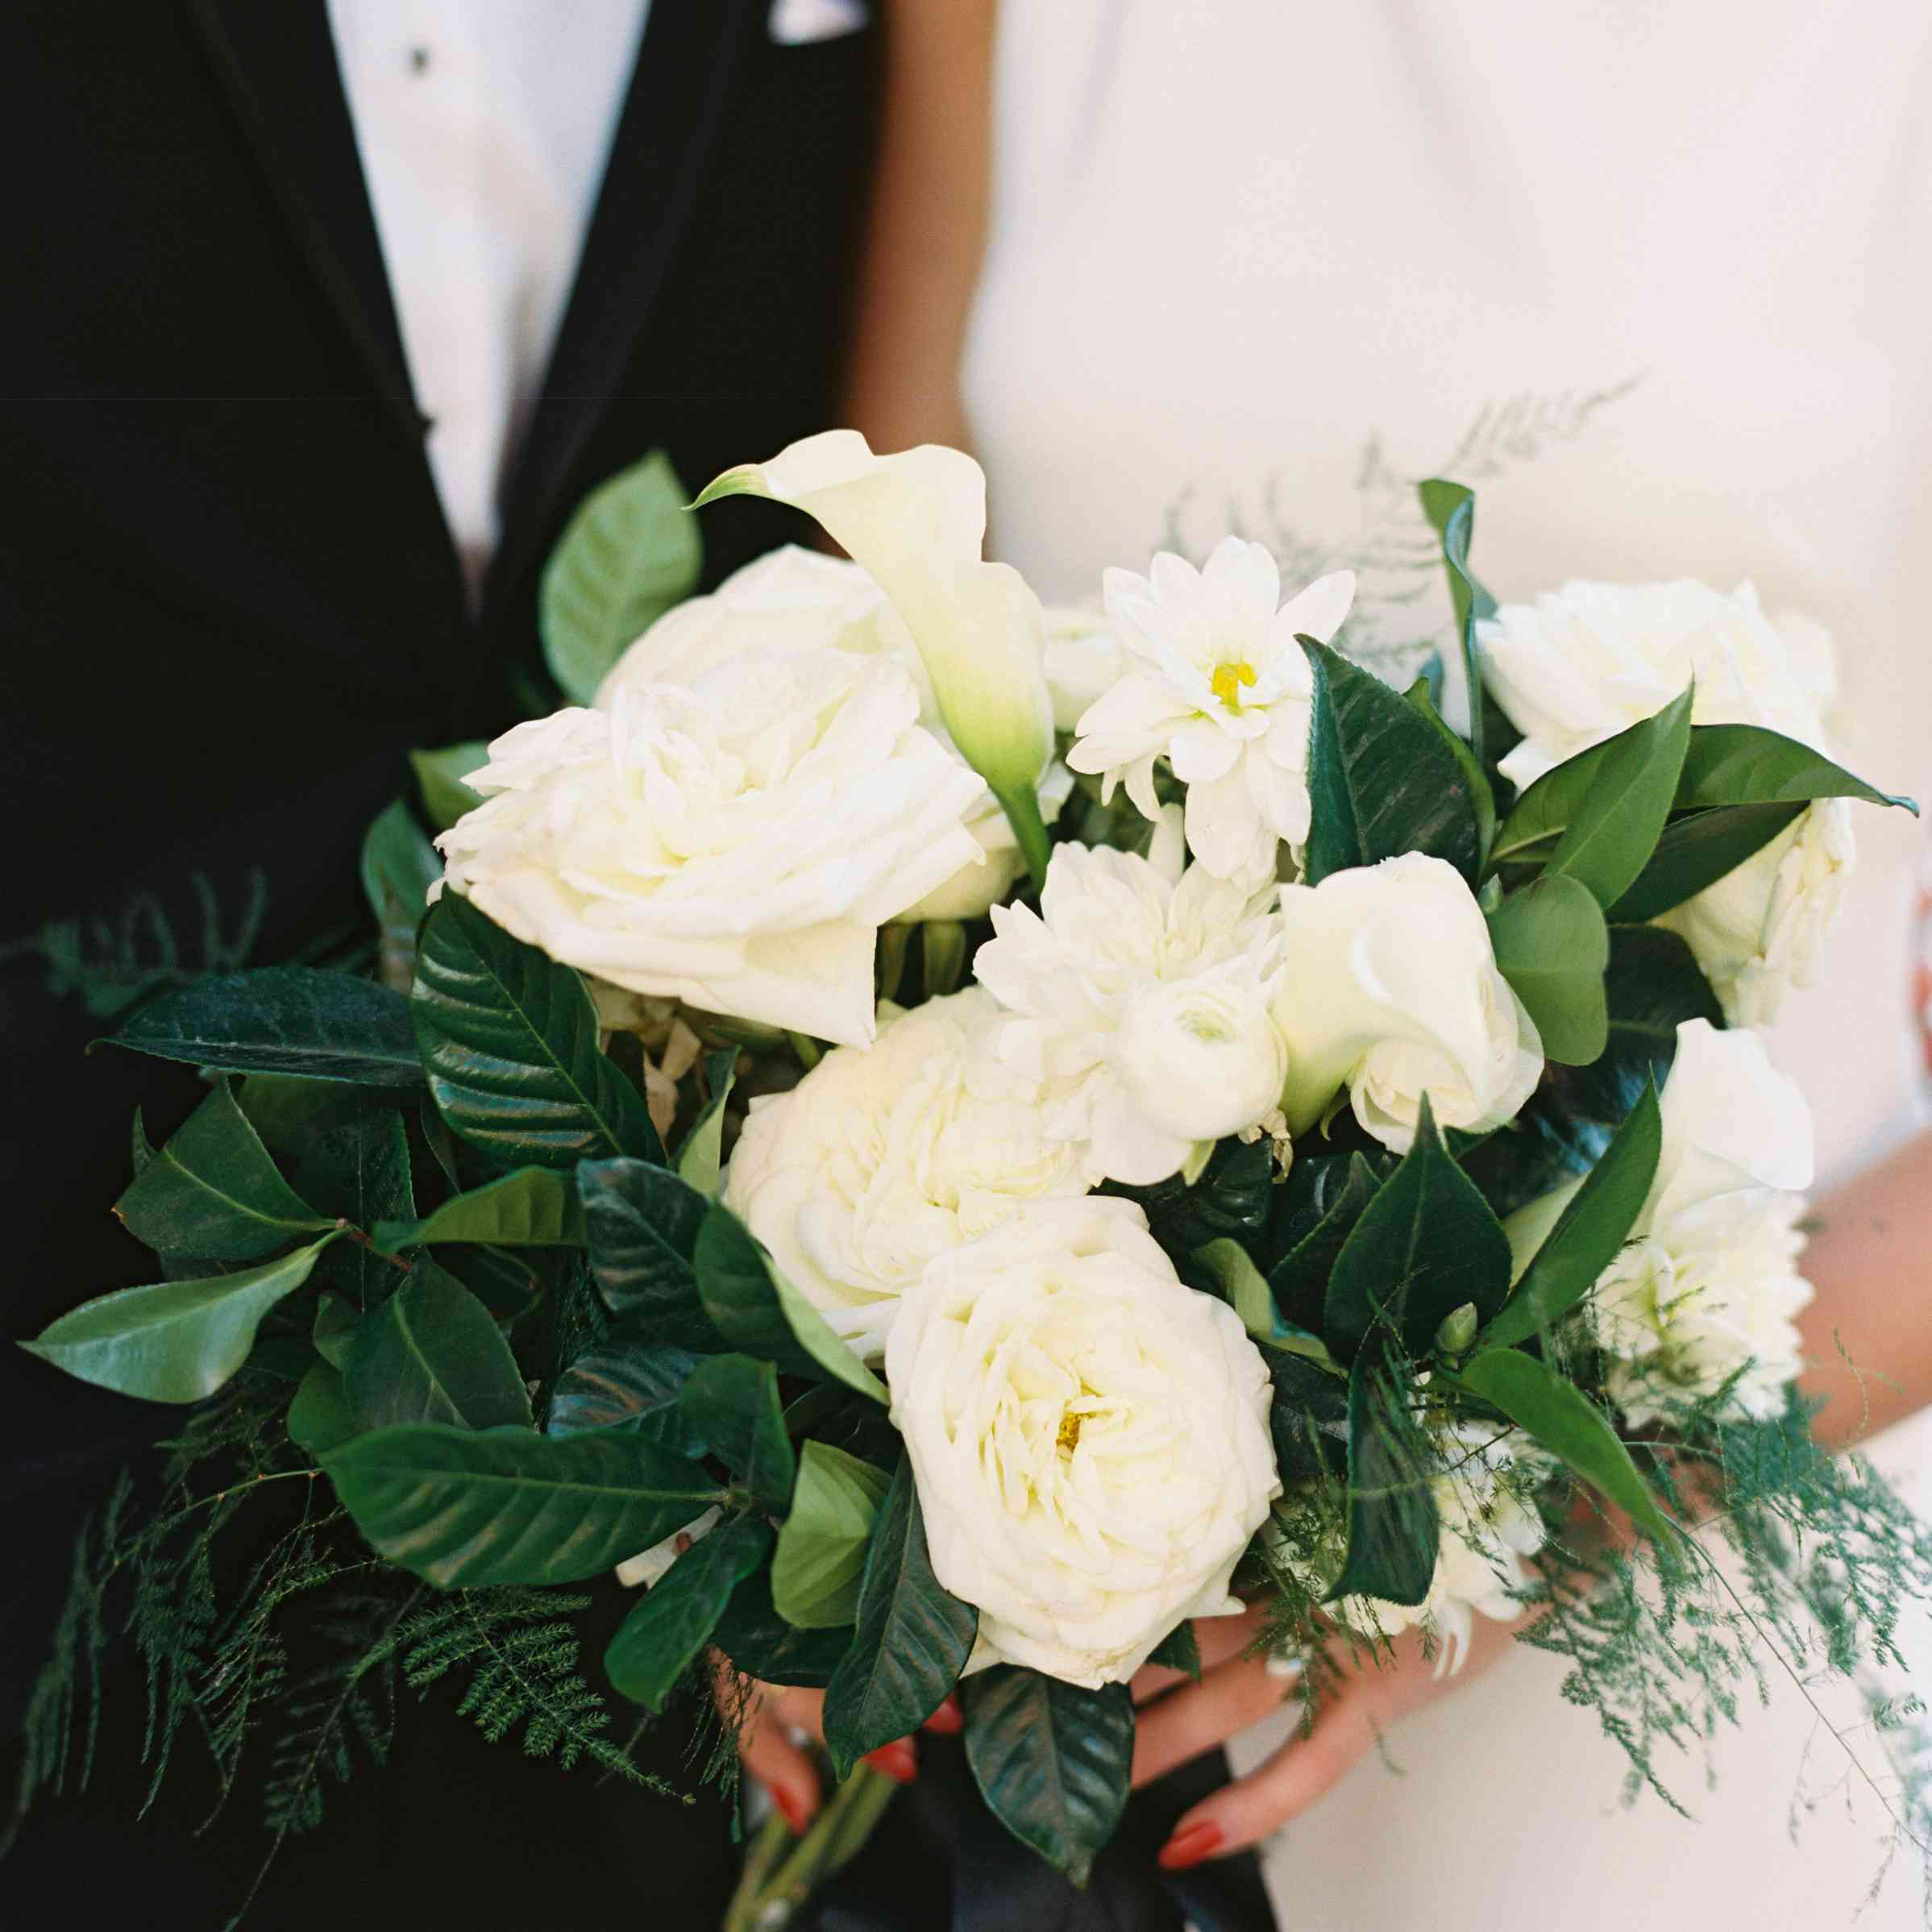 Bride and groom holding bouquet